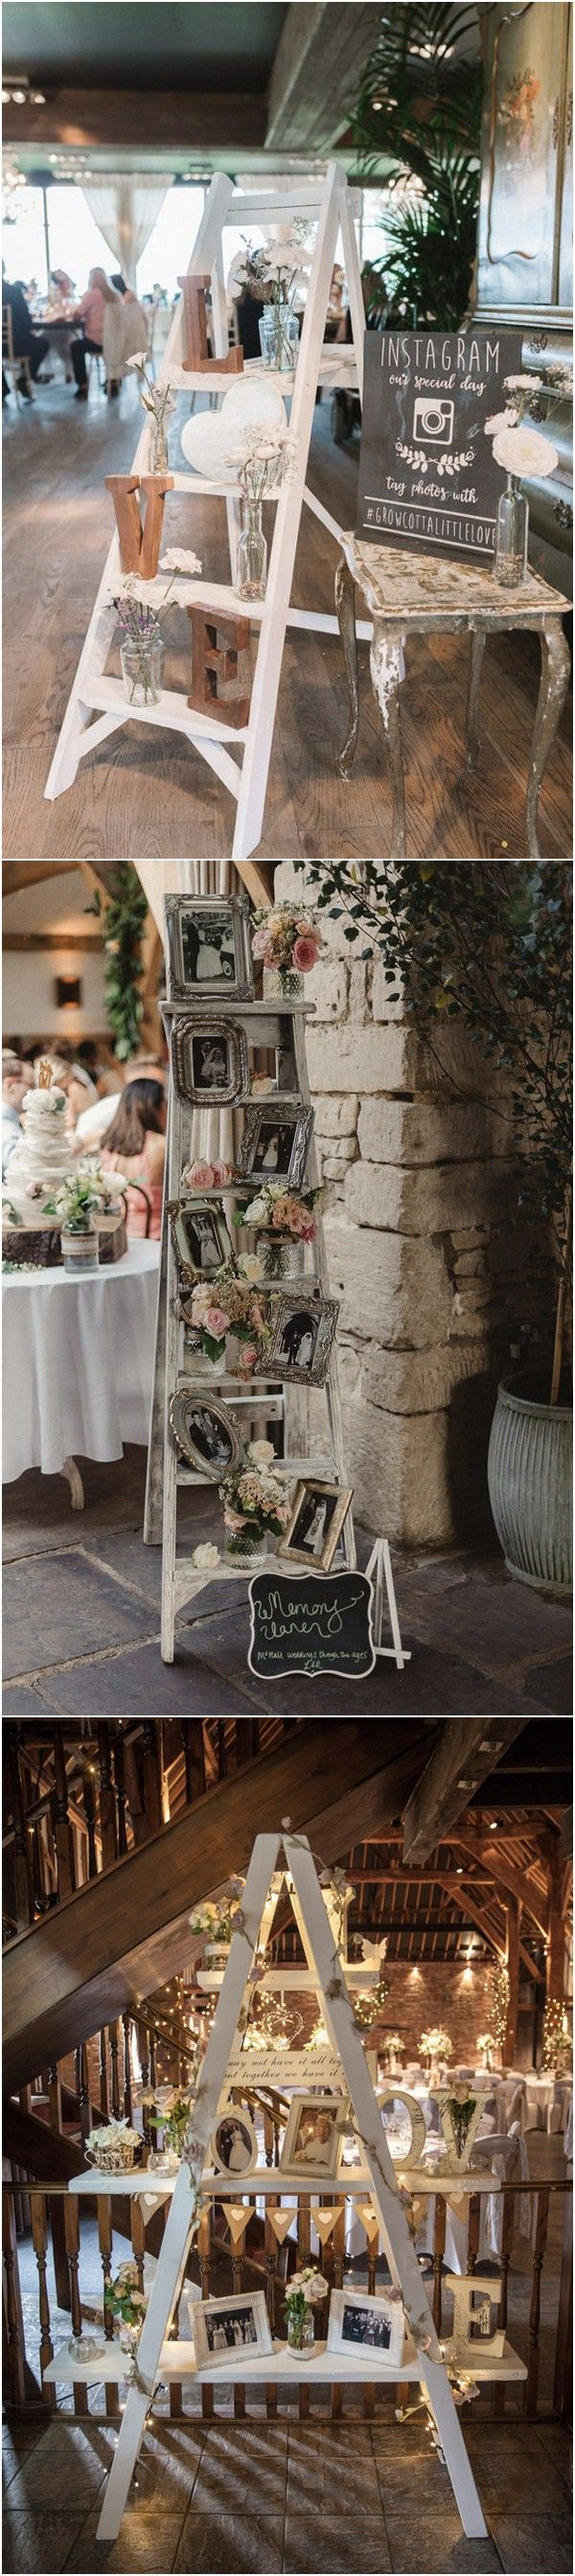 vintage ladders inspired wedding reception decoration ideas2